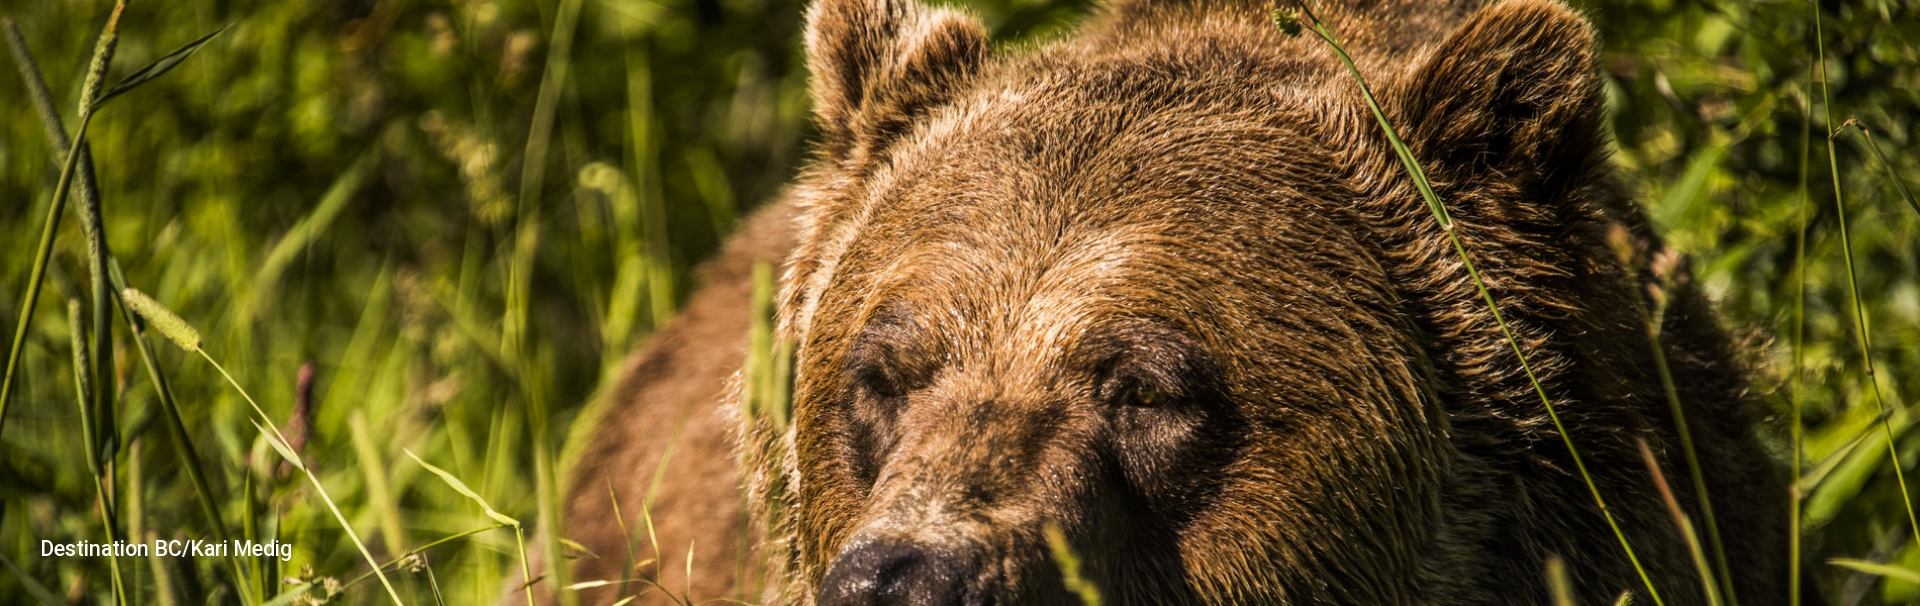 Grizzly Bear at Kicking Horse Mountain Resort